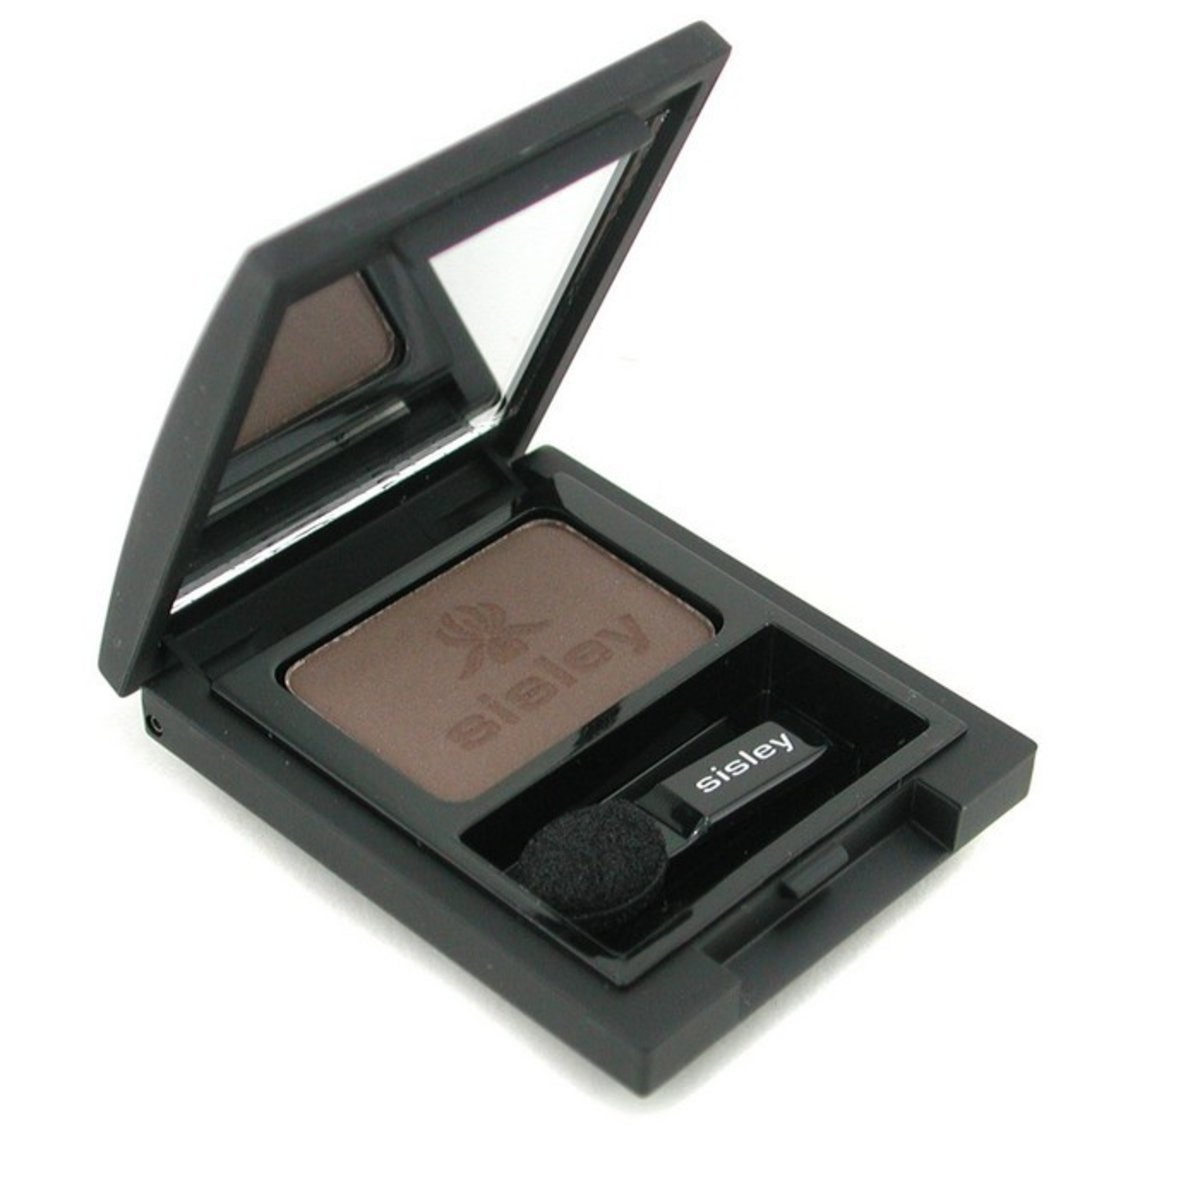 Phyto Ombre Eclat Eyeshadow - # 19 Ebony  -[Parallel Import Product]